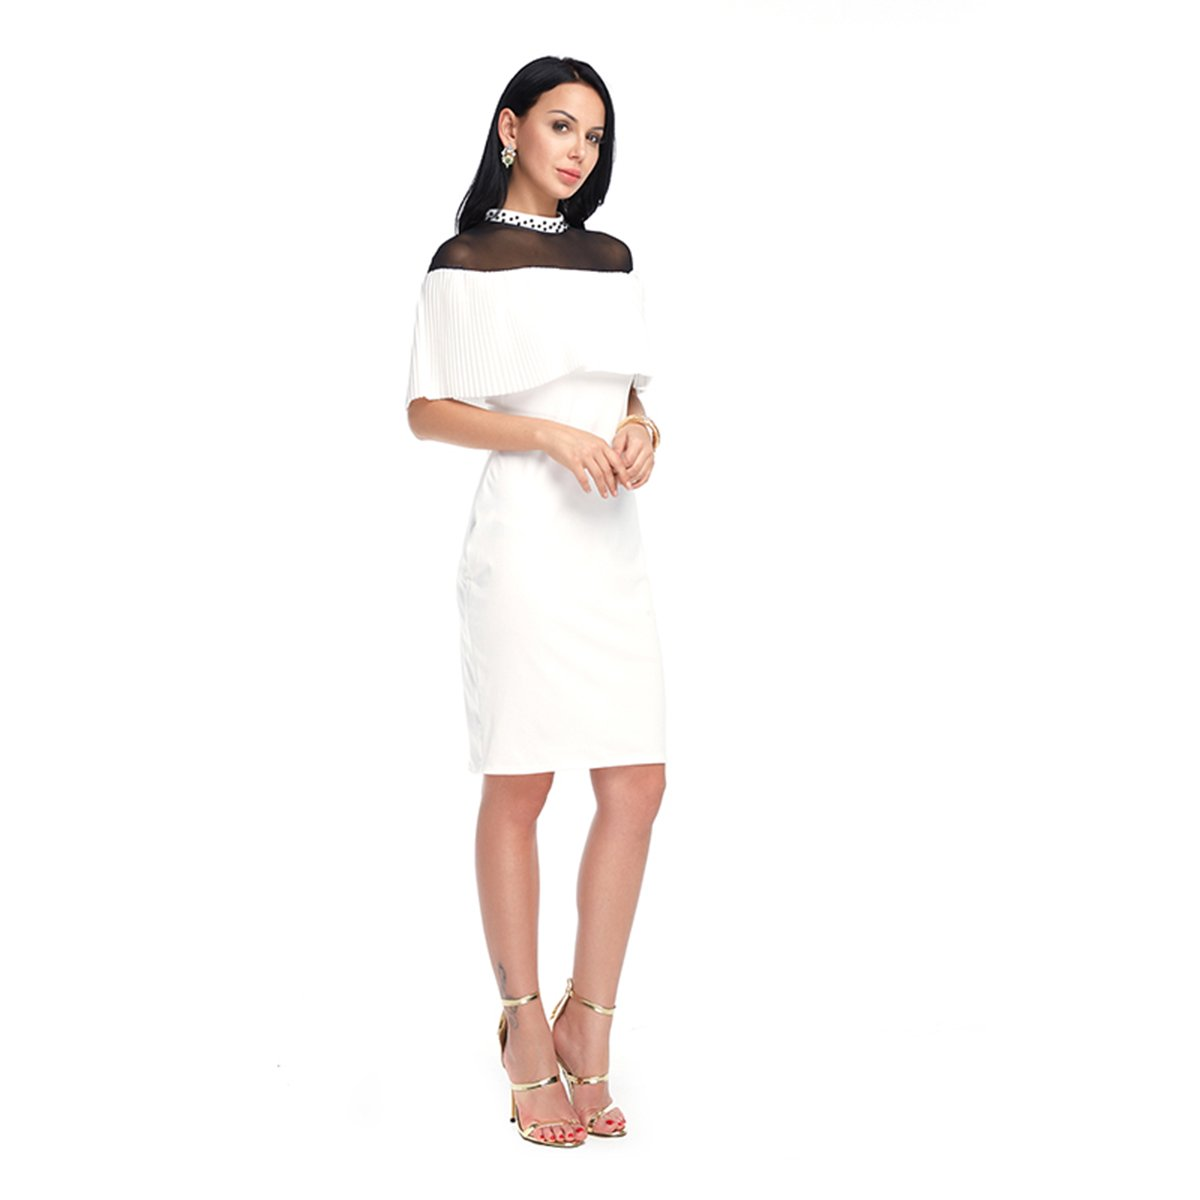 68a483c2b2e4 FLORHO Women's Lace Patchwork Half Sleeve Bodycon Solid Sexy Midi Dresses  at Amazon Women's Clothing store: